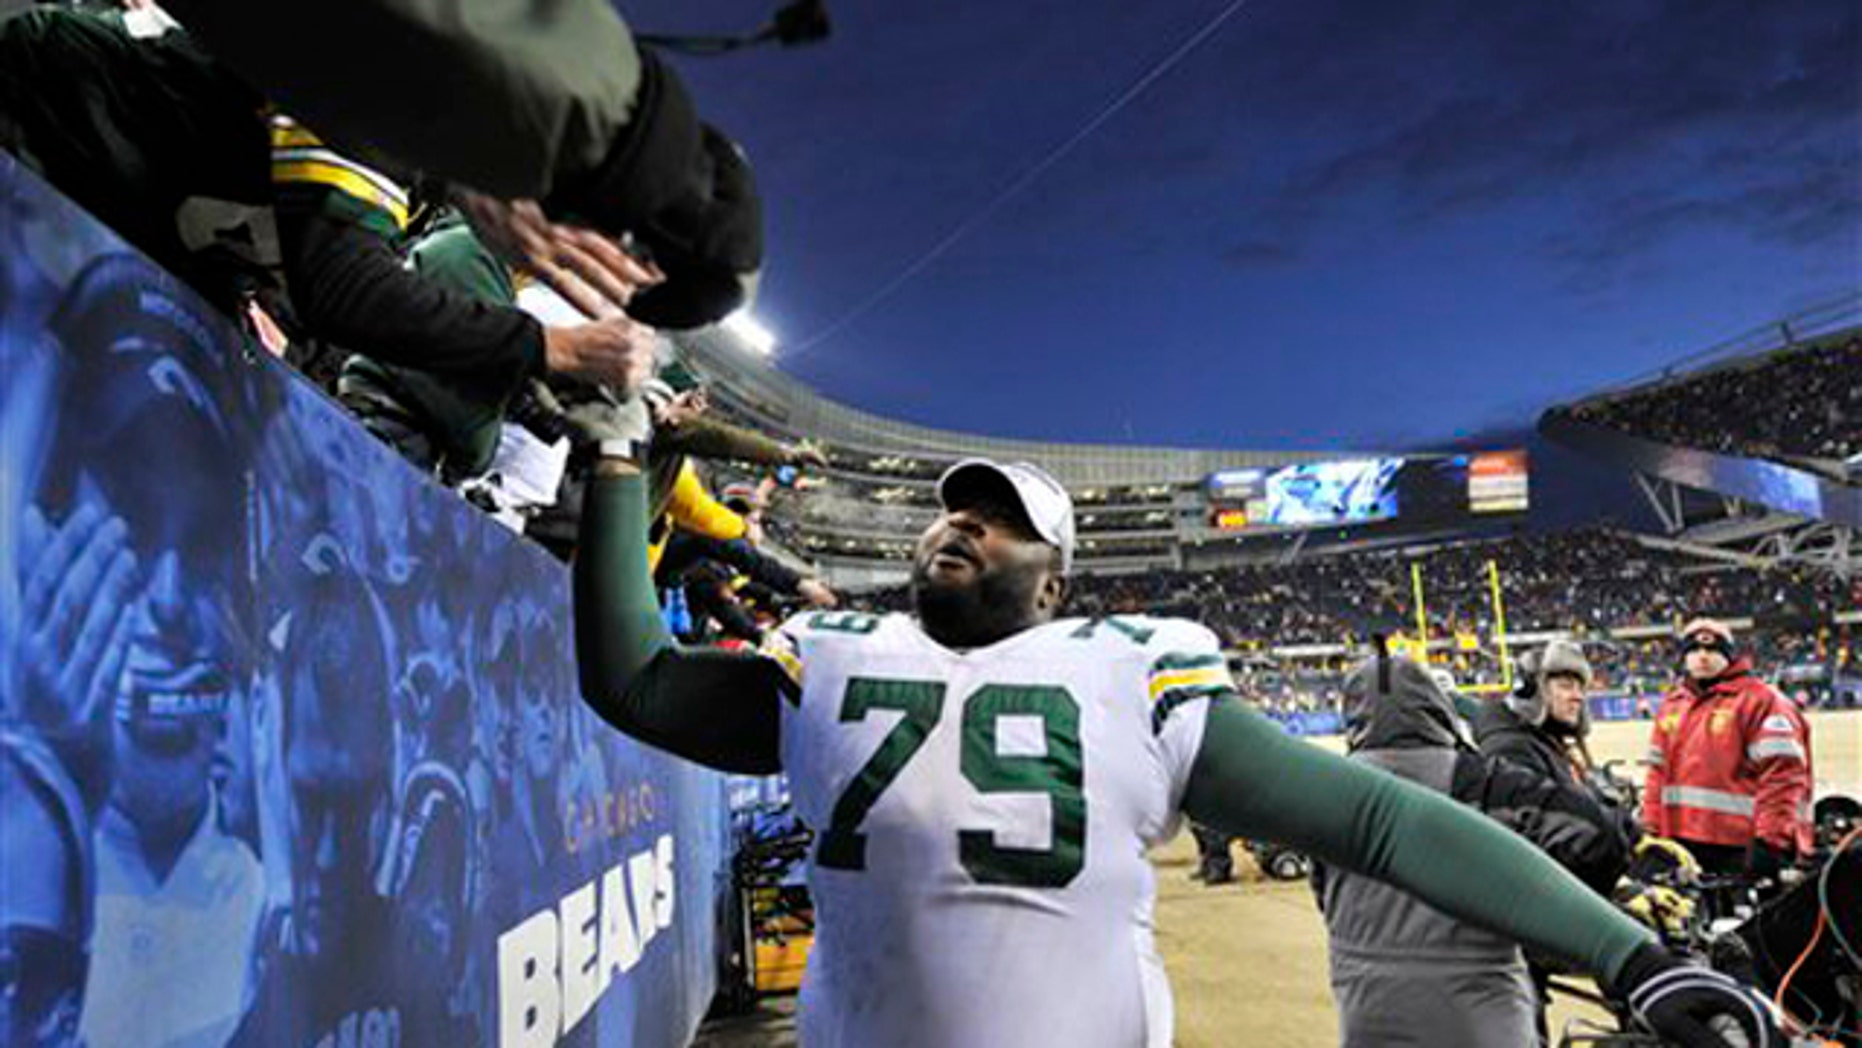 Jan. 23, 2011: Green Bay Packers defensive tackle Ryan Pickett celebrates with fans after the Packers' 21-14 win over the Chicago Bears in the NFC Championship NFL football game in Chicago.